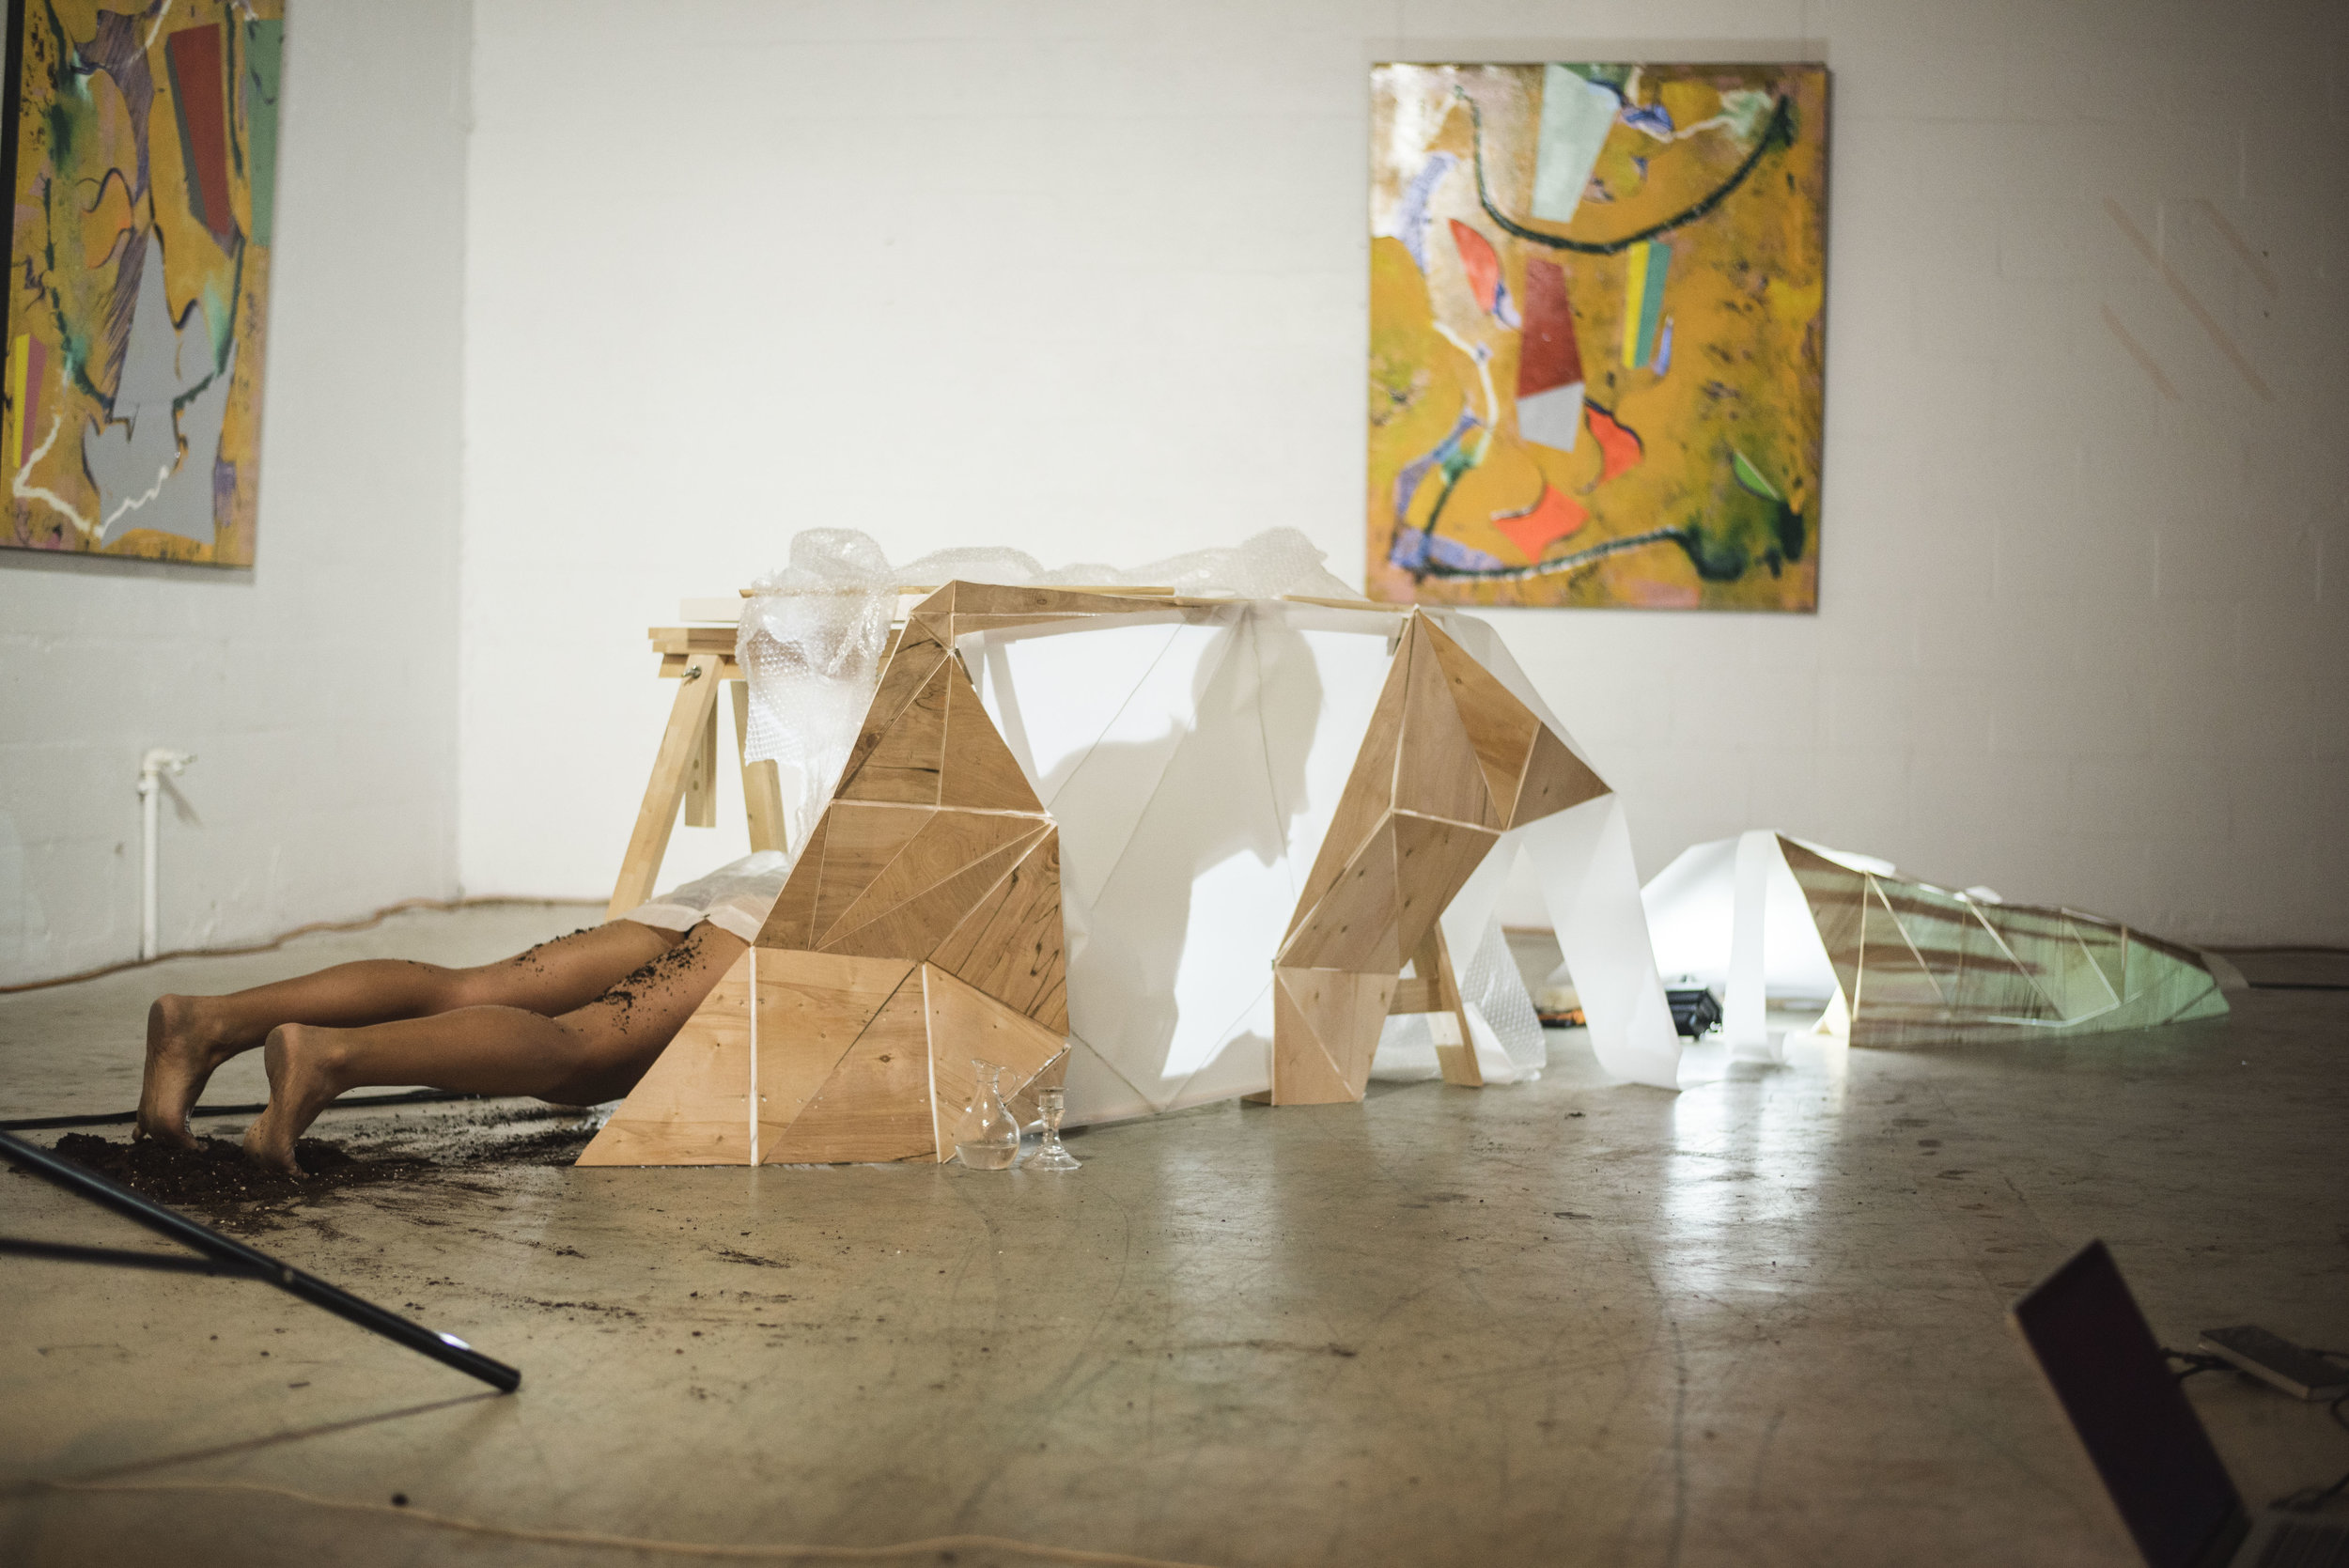 #woman  Choreography/Peformance: Roxana Barba  Music: Melissa Yverson  Video installation: Sophia Cabral, Sofia del Rivero